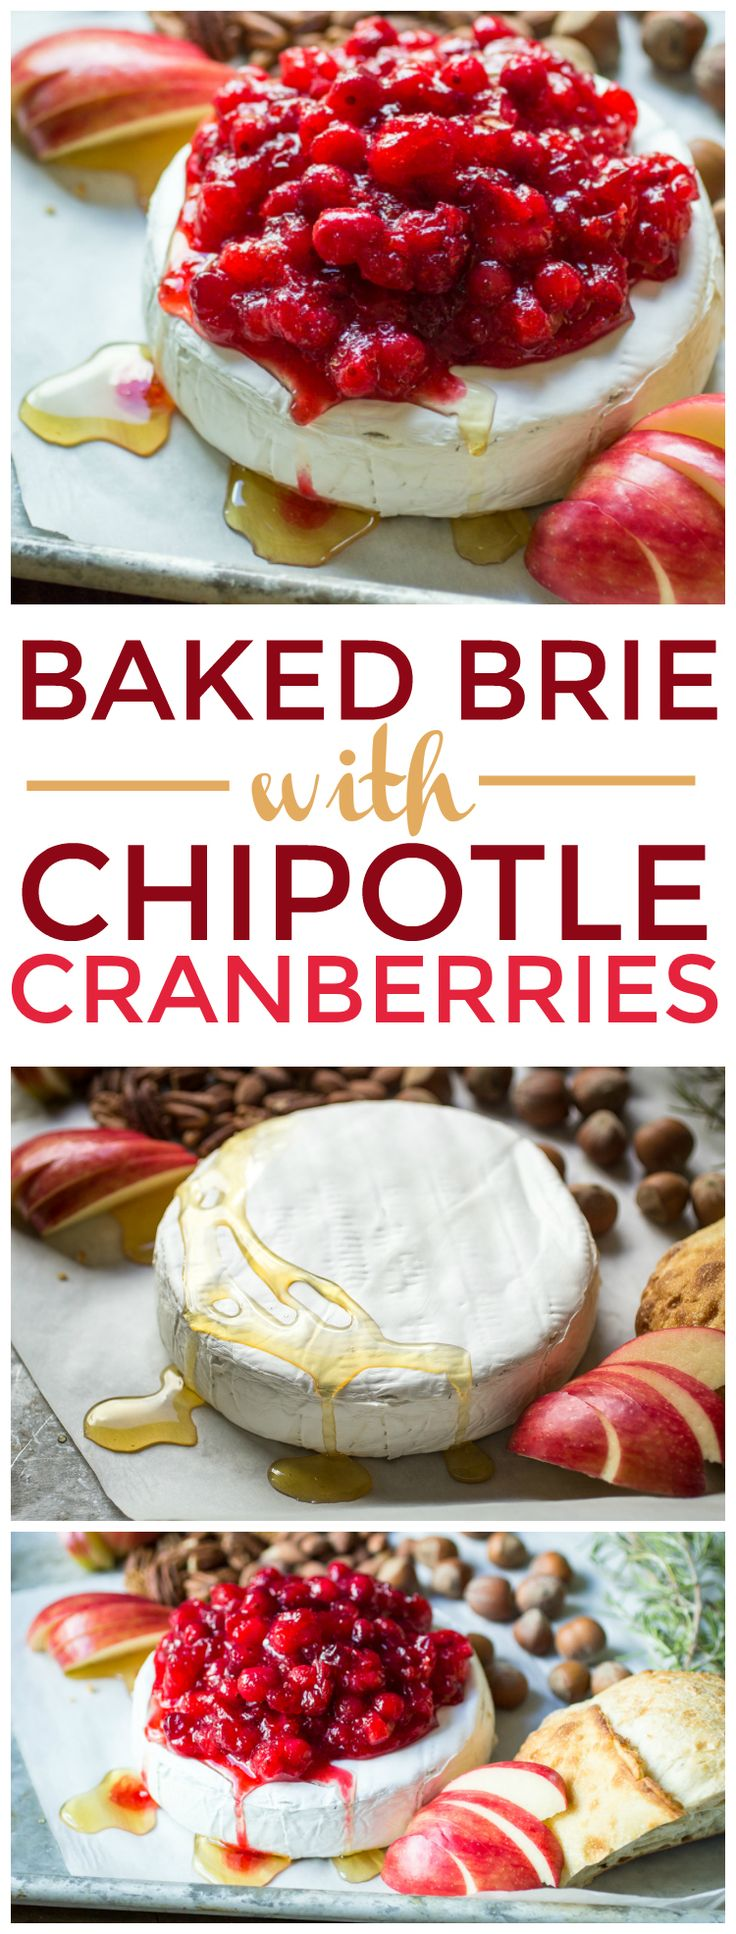 Chipotle Cranberry sauce is the perfect topping for baked brie! Add a little honey and lemon zest, then serve with apples, bread, and pecans.